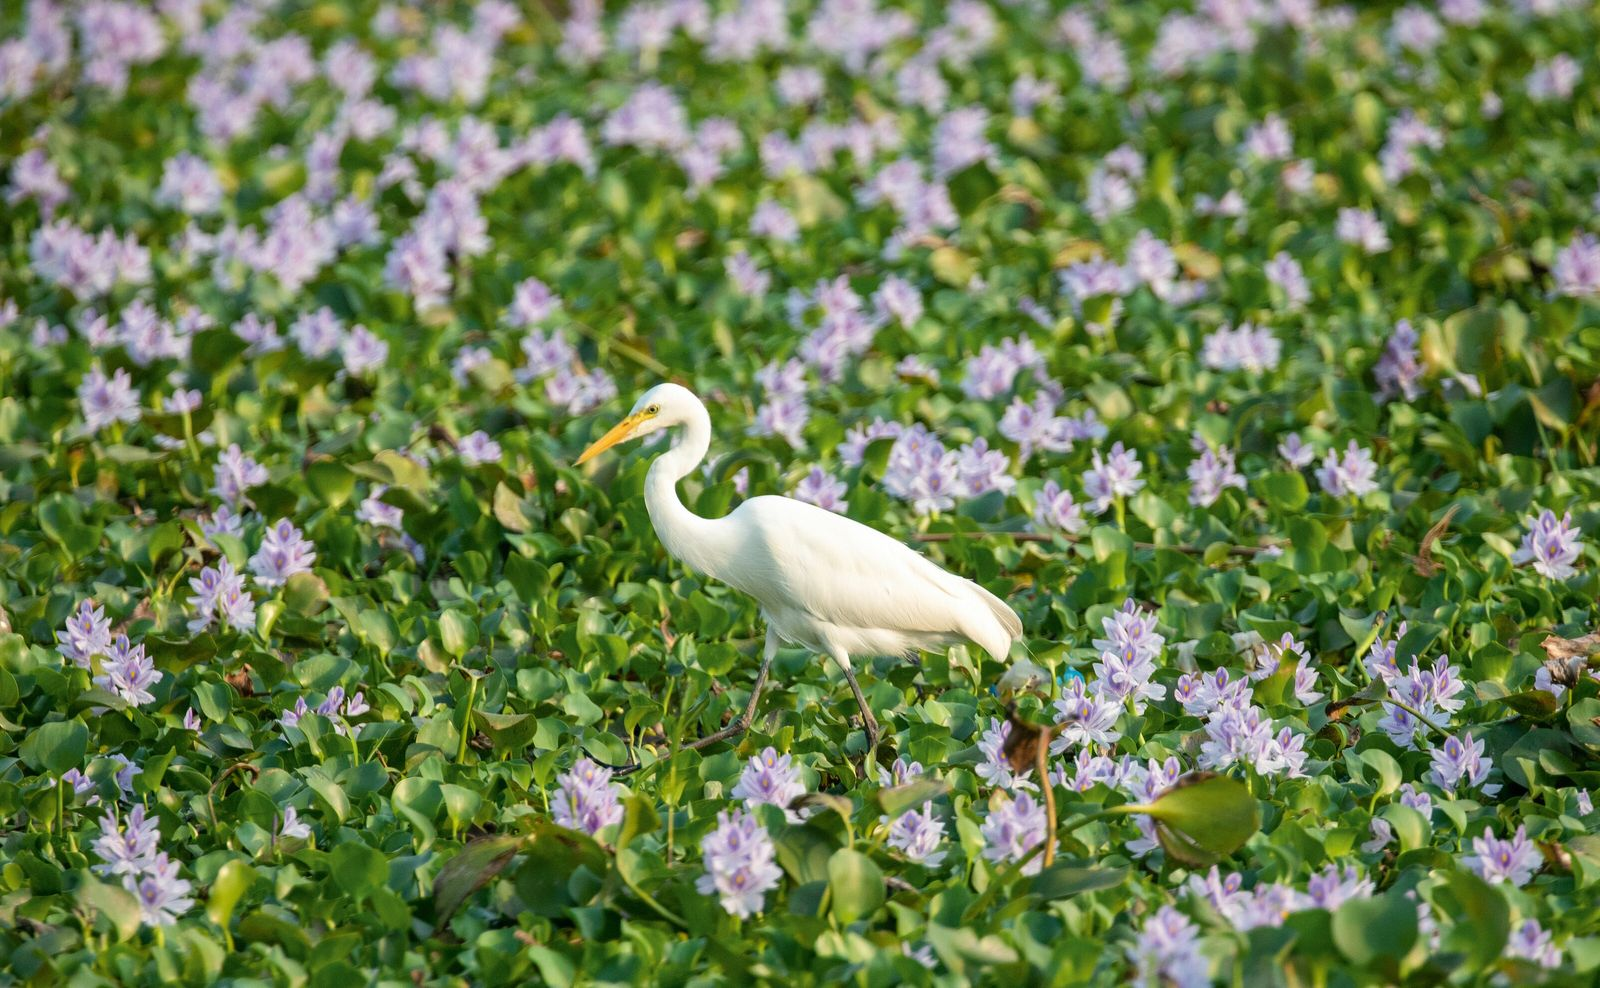 A cattle egret wades among water hyacinths. While beautiful, the ubiquitous flower poses challenges to those living ...